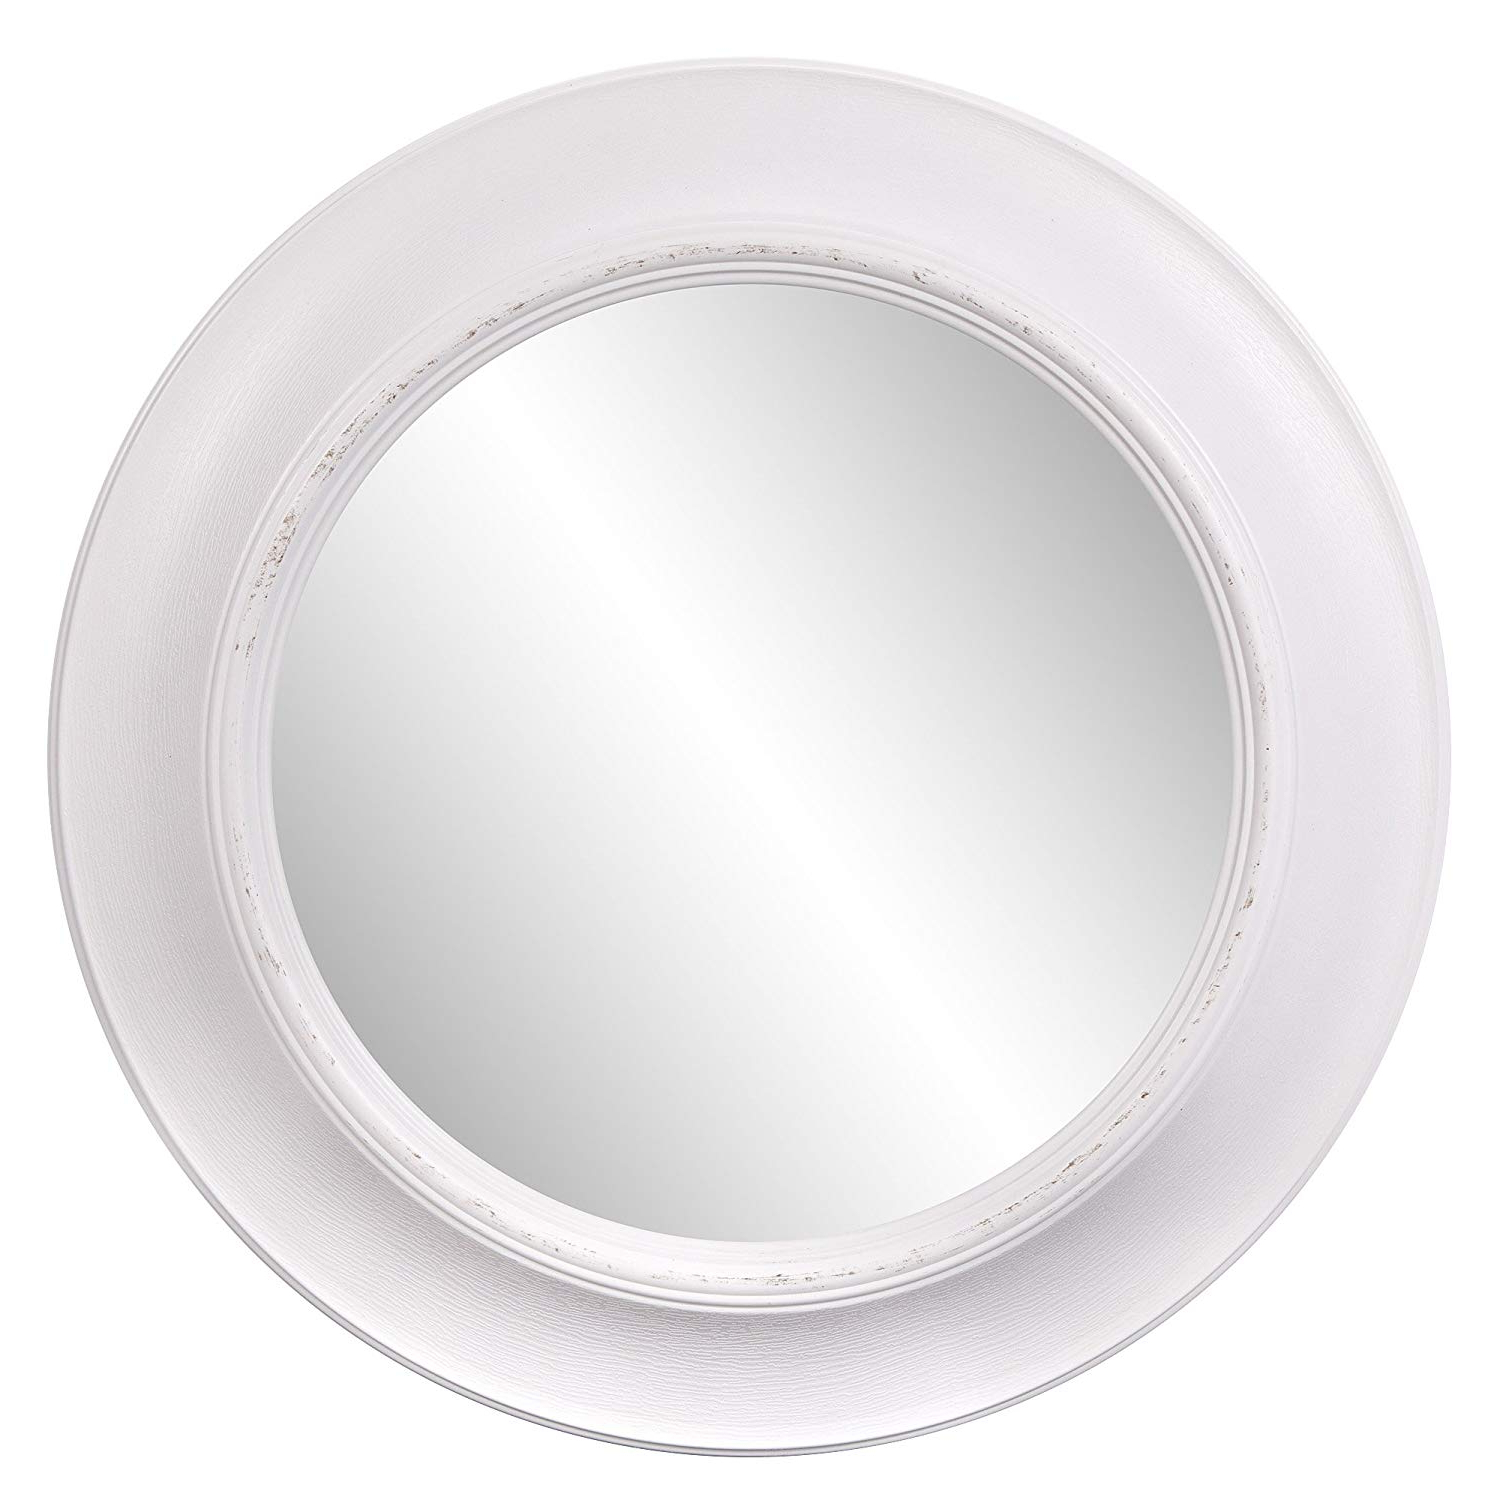 White Round Wall Mirrors Throughout Most Recently Released Patton Wall Decor 24 Inch Rustic Round Mirror In Distressed White (View 2 of 20)